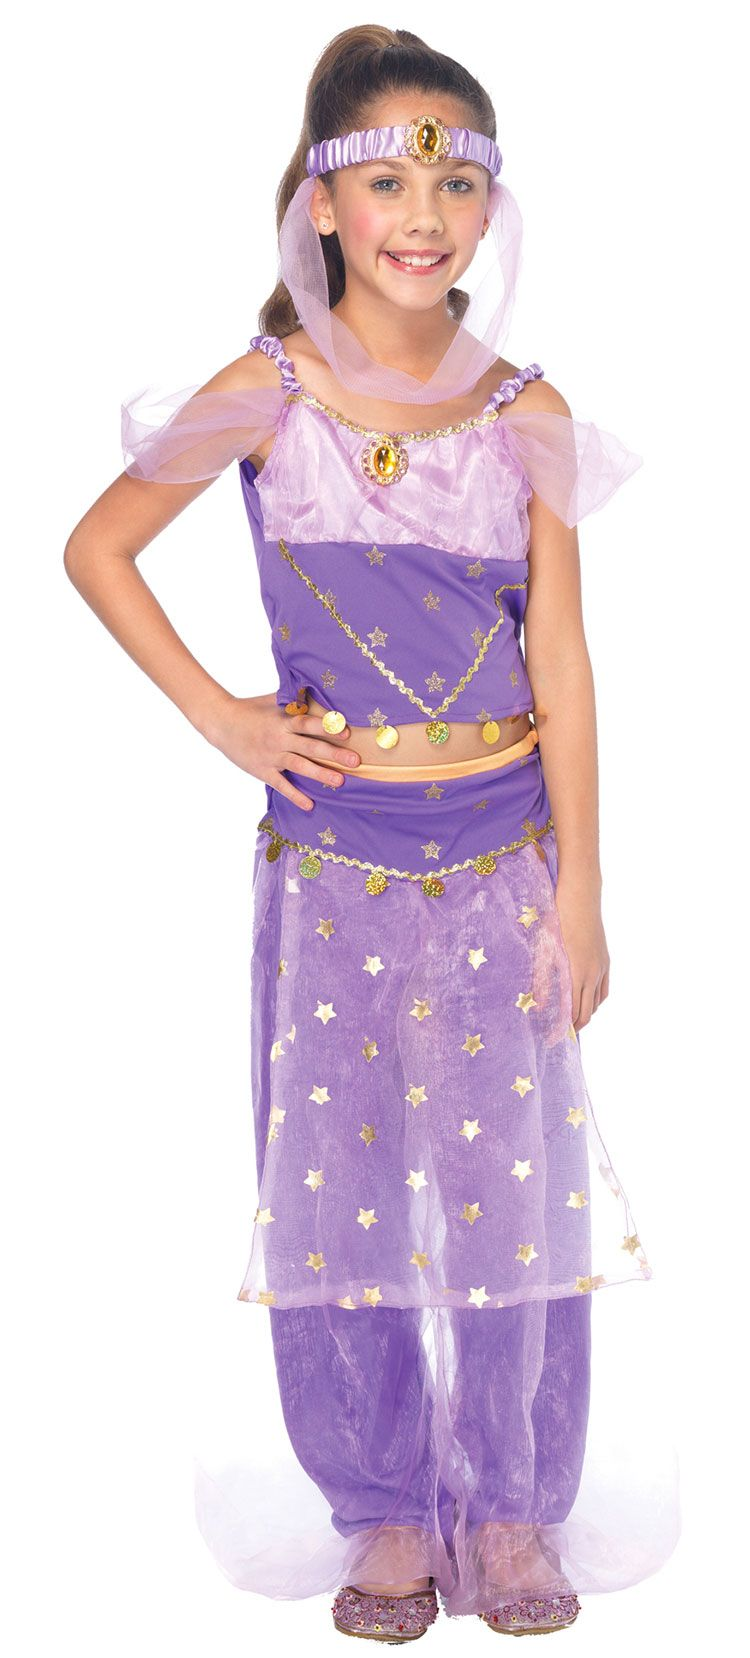 Genie halloween costumes for girls-5165